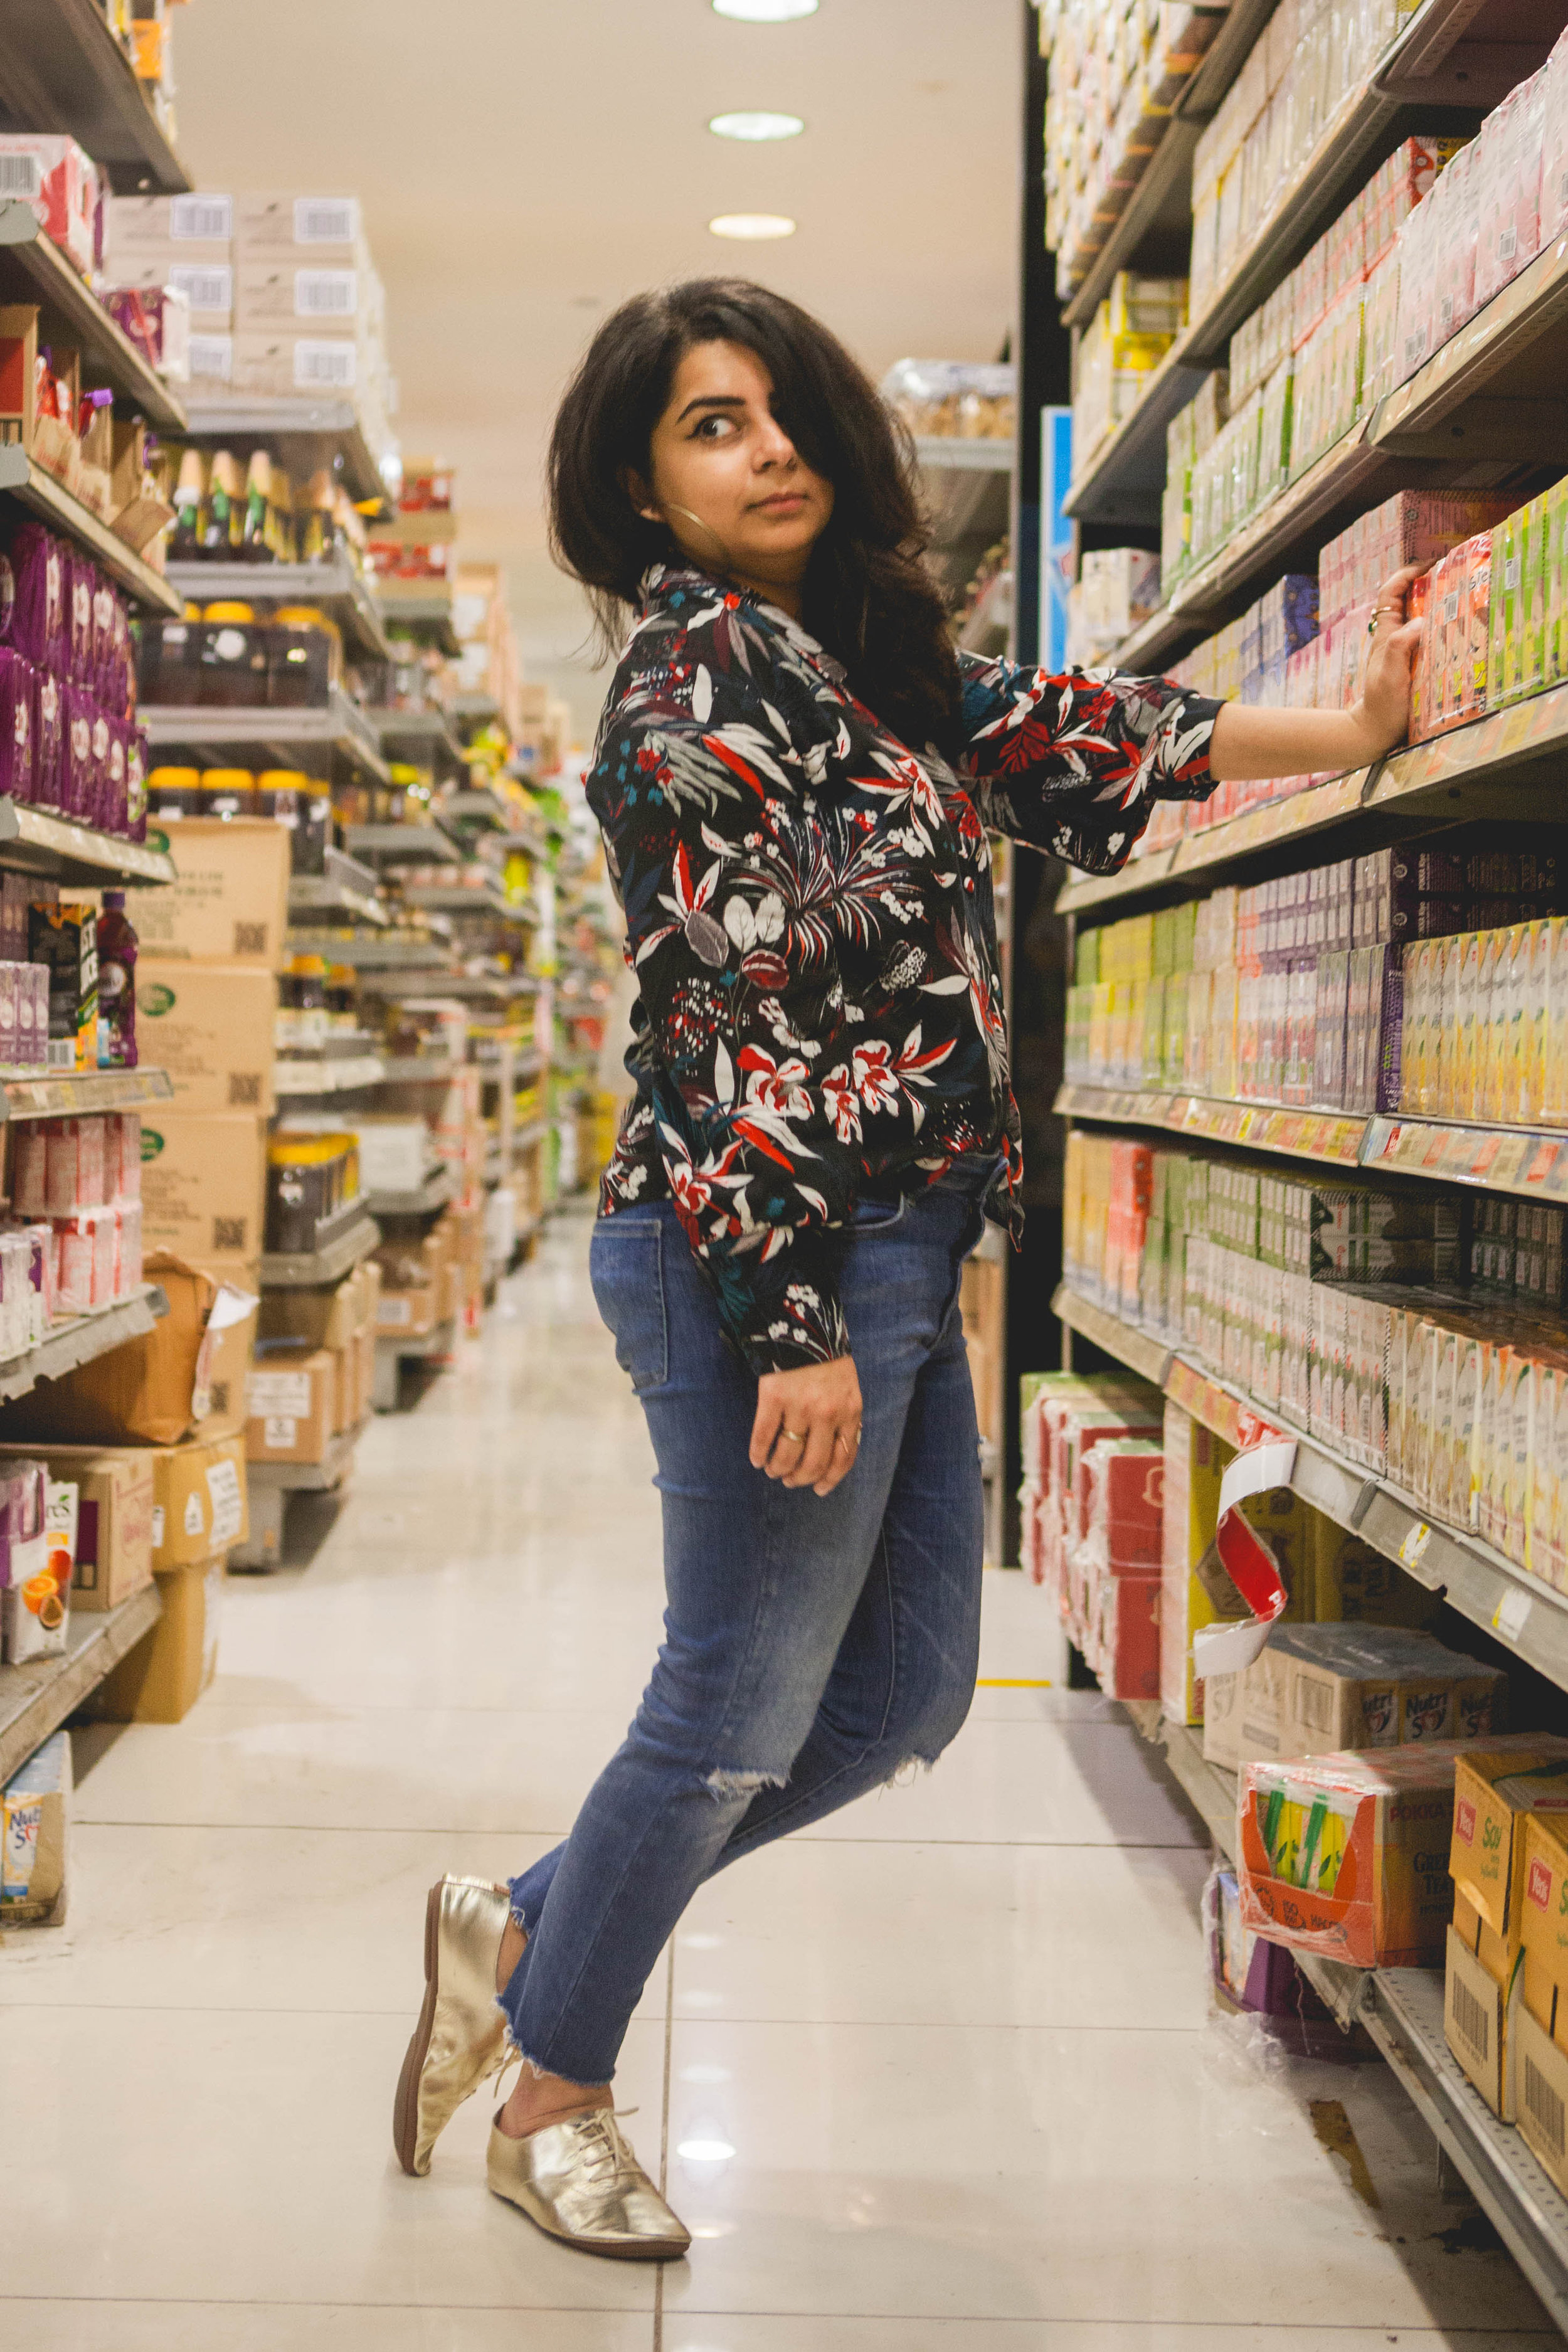 Pooja Nansi is Singapore's first Youth Poet Ambassador. In 2016, she was a recipient of the Young Artist Award, Singapore's highest accolade for arts practitioners below the age of 35.Her work has been described as